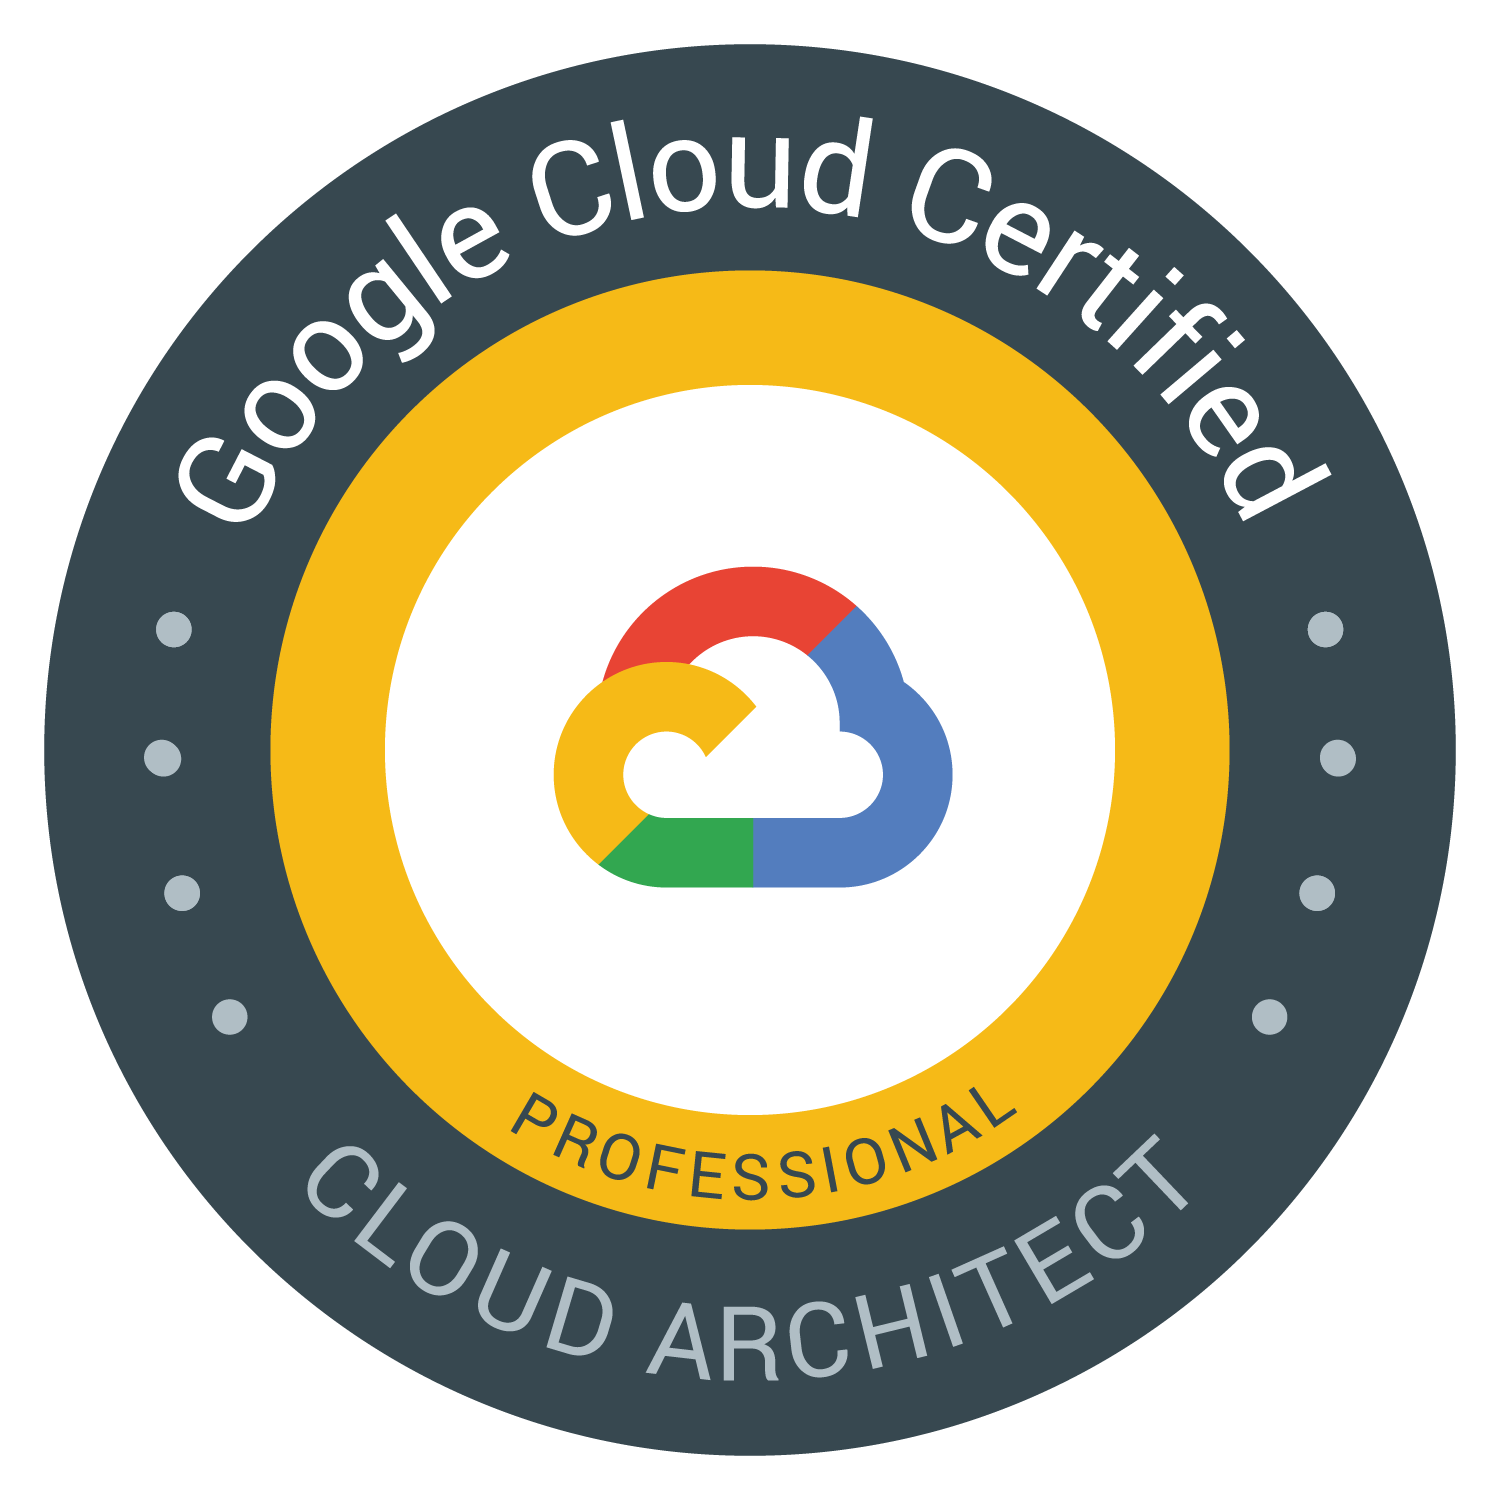 Google Cloud Certified – Professional Cloud Architect